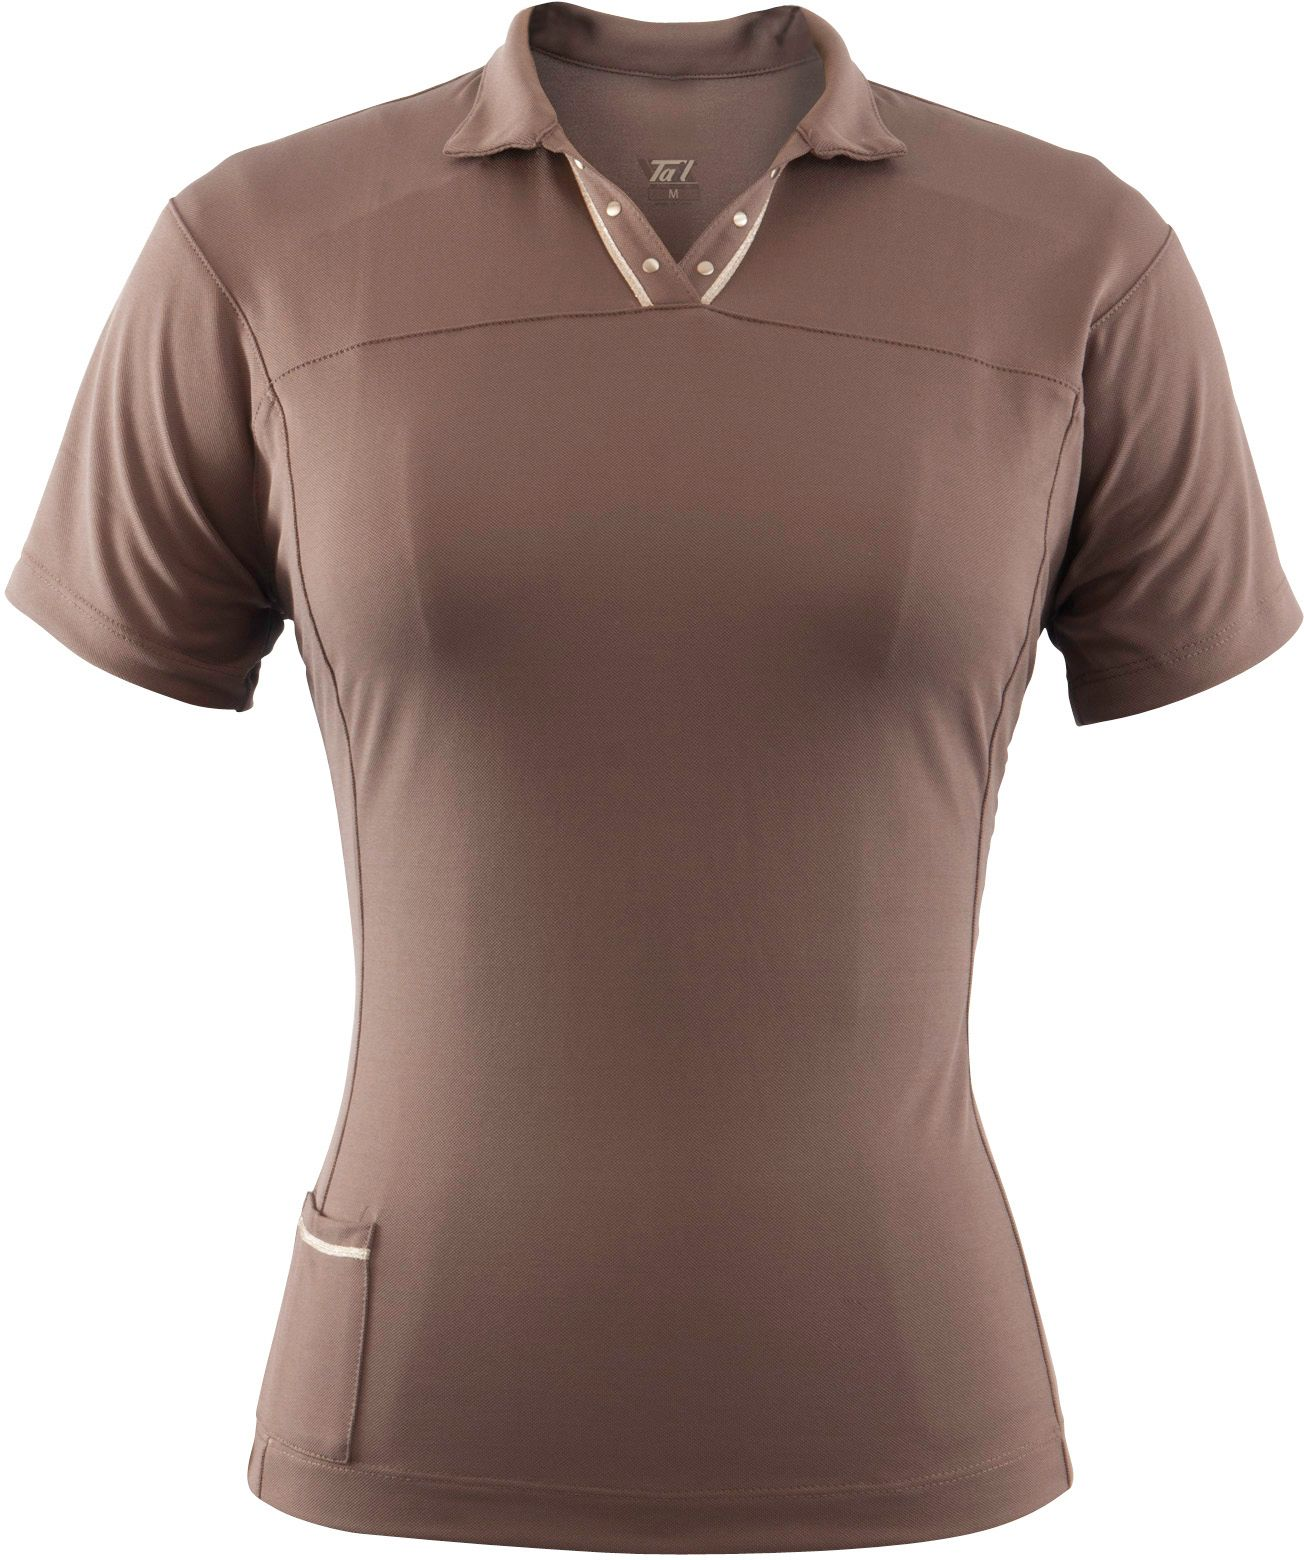 Tail Activewear Women's Forever Taupe Short Sleeve Mock Neck